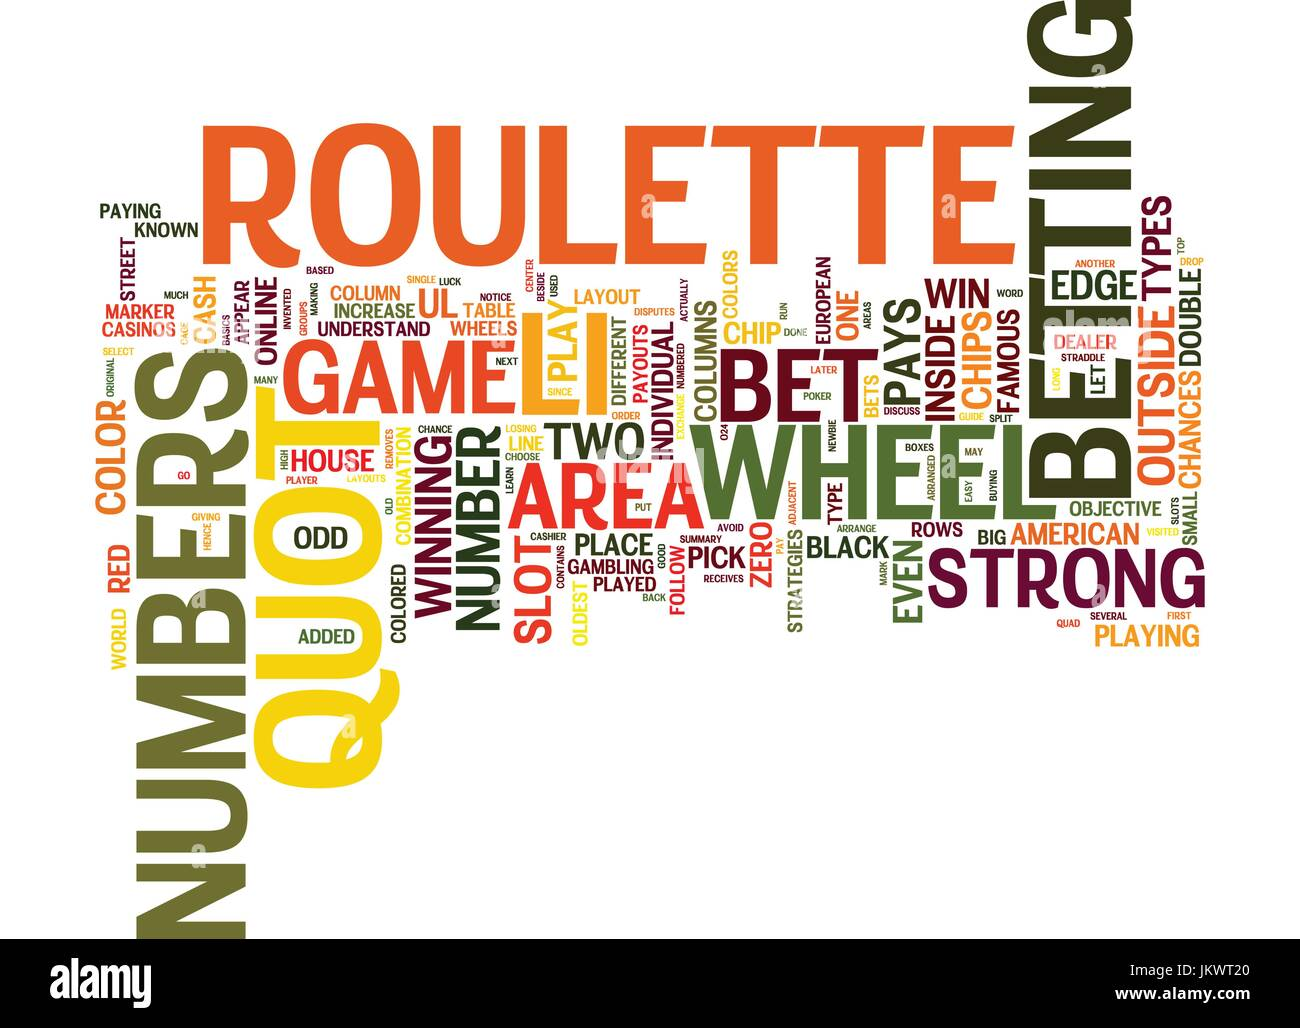 YOUR GUIDE ON HOW TO PLAY ROULETTE Text Background Word Cloud Concept Stock Vector